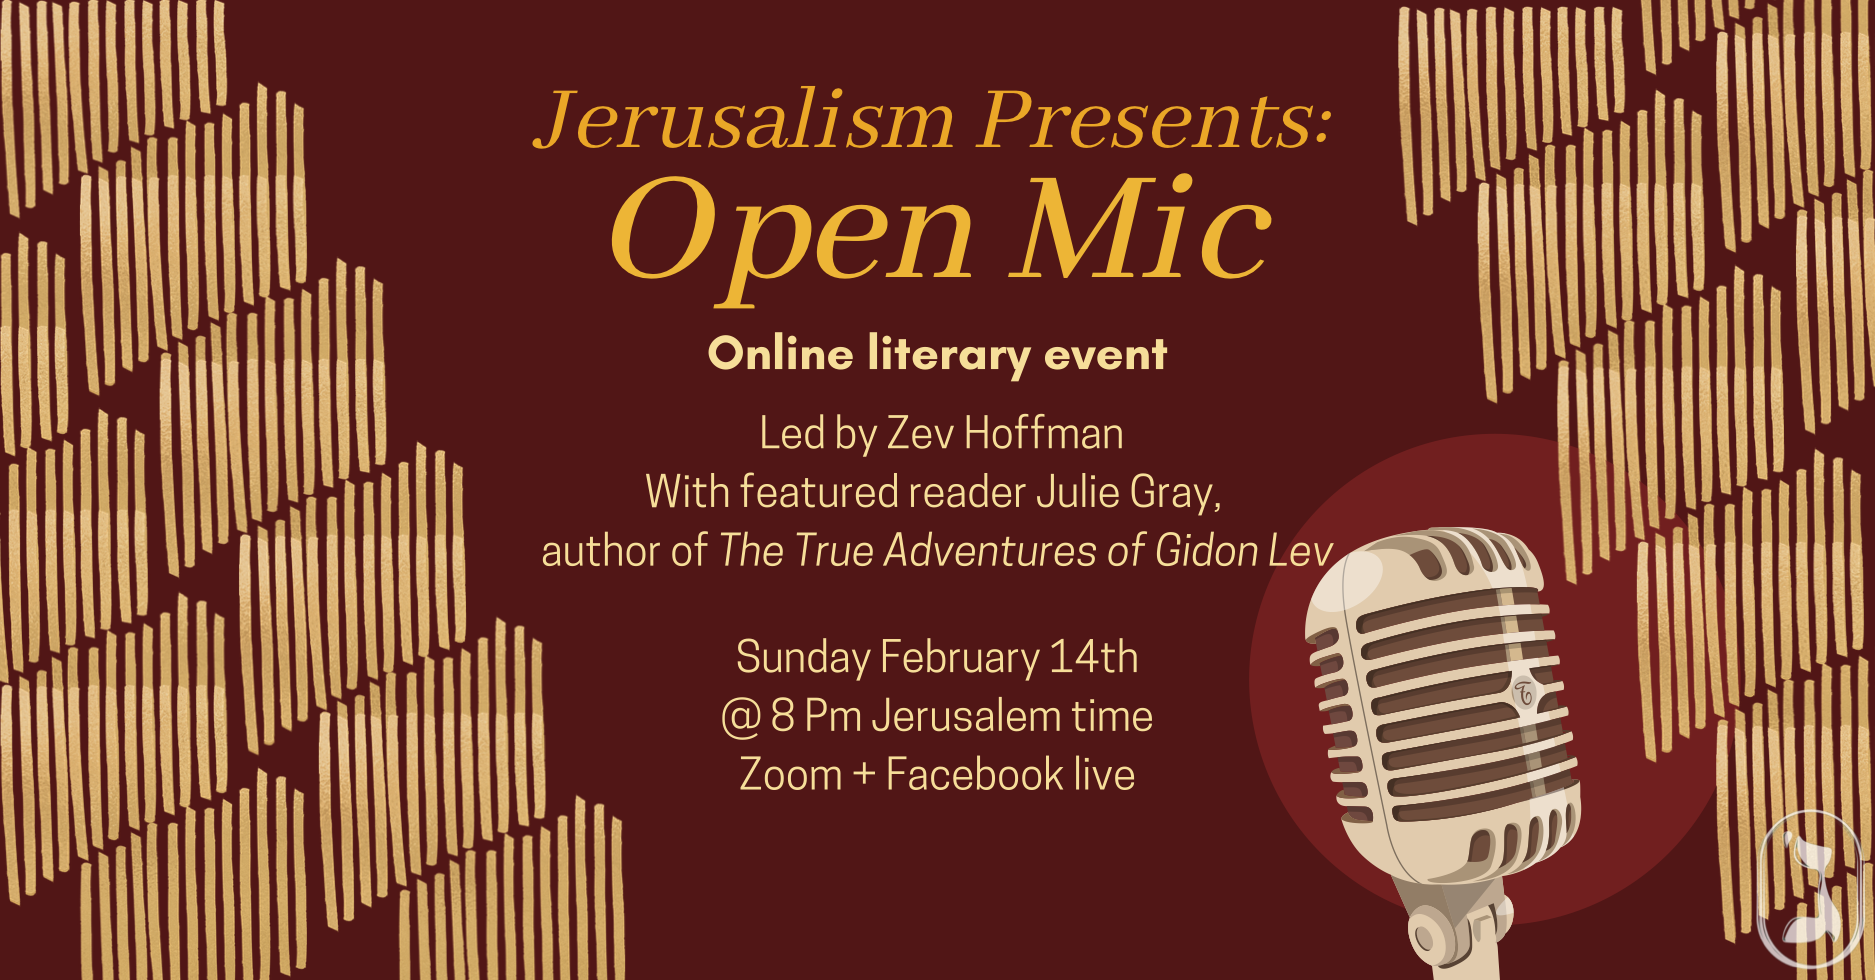 Open Mic with Featured Reader Julie Gray